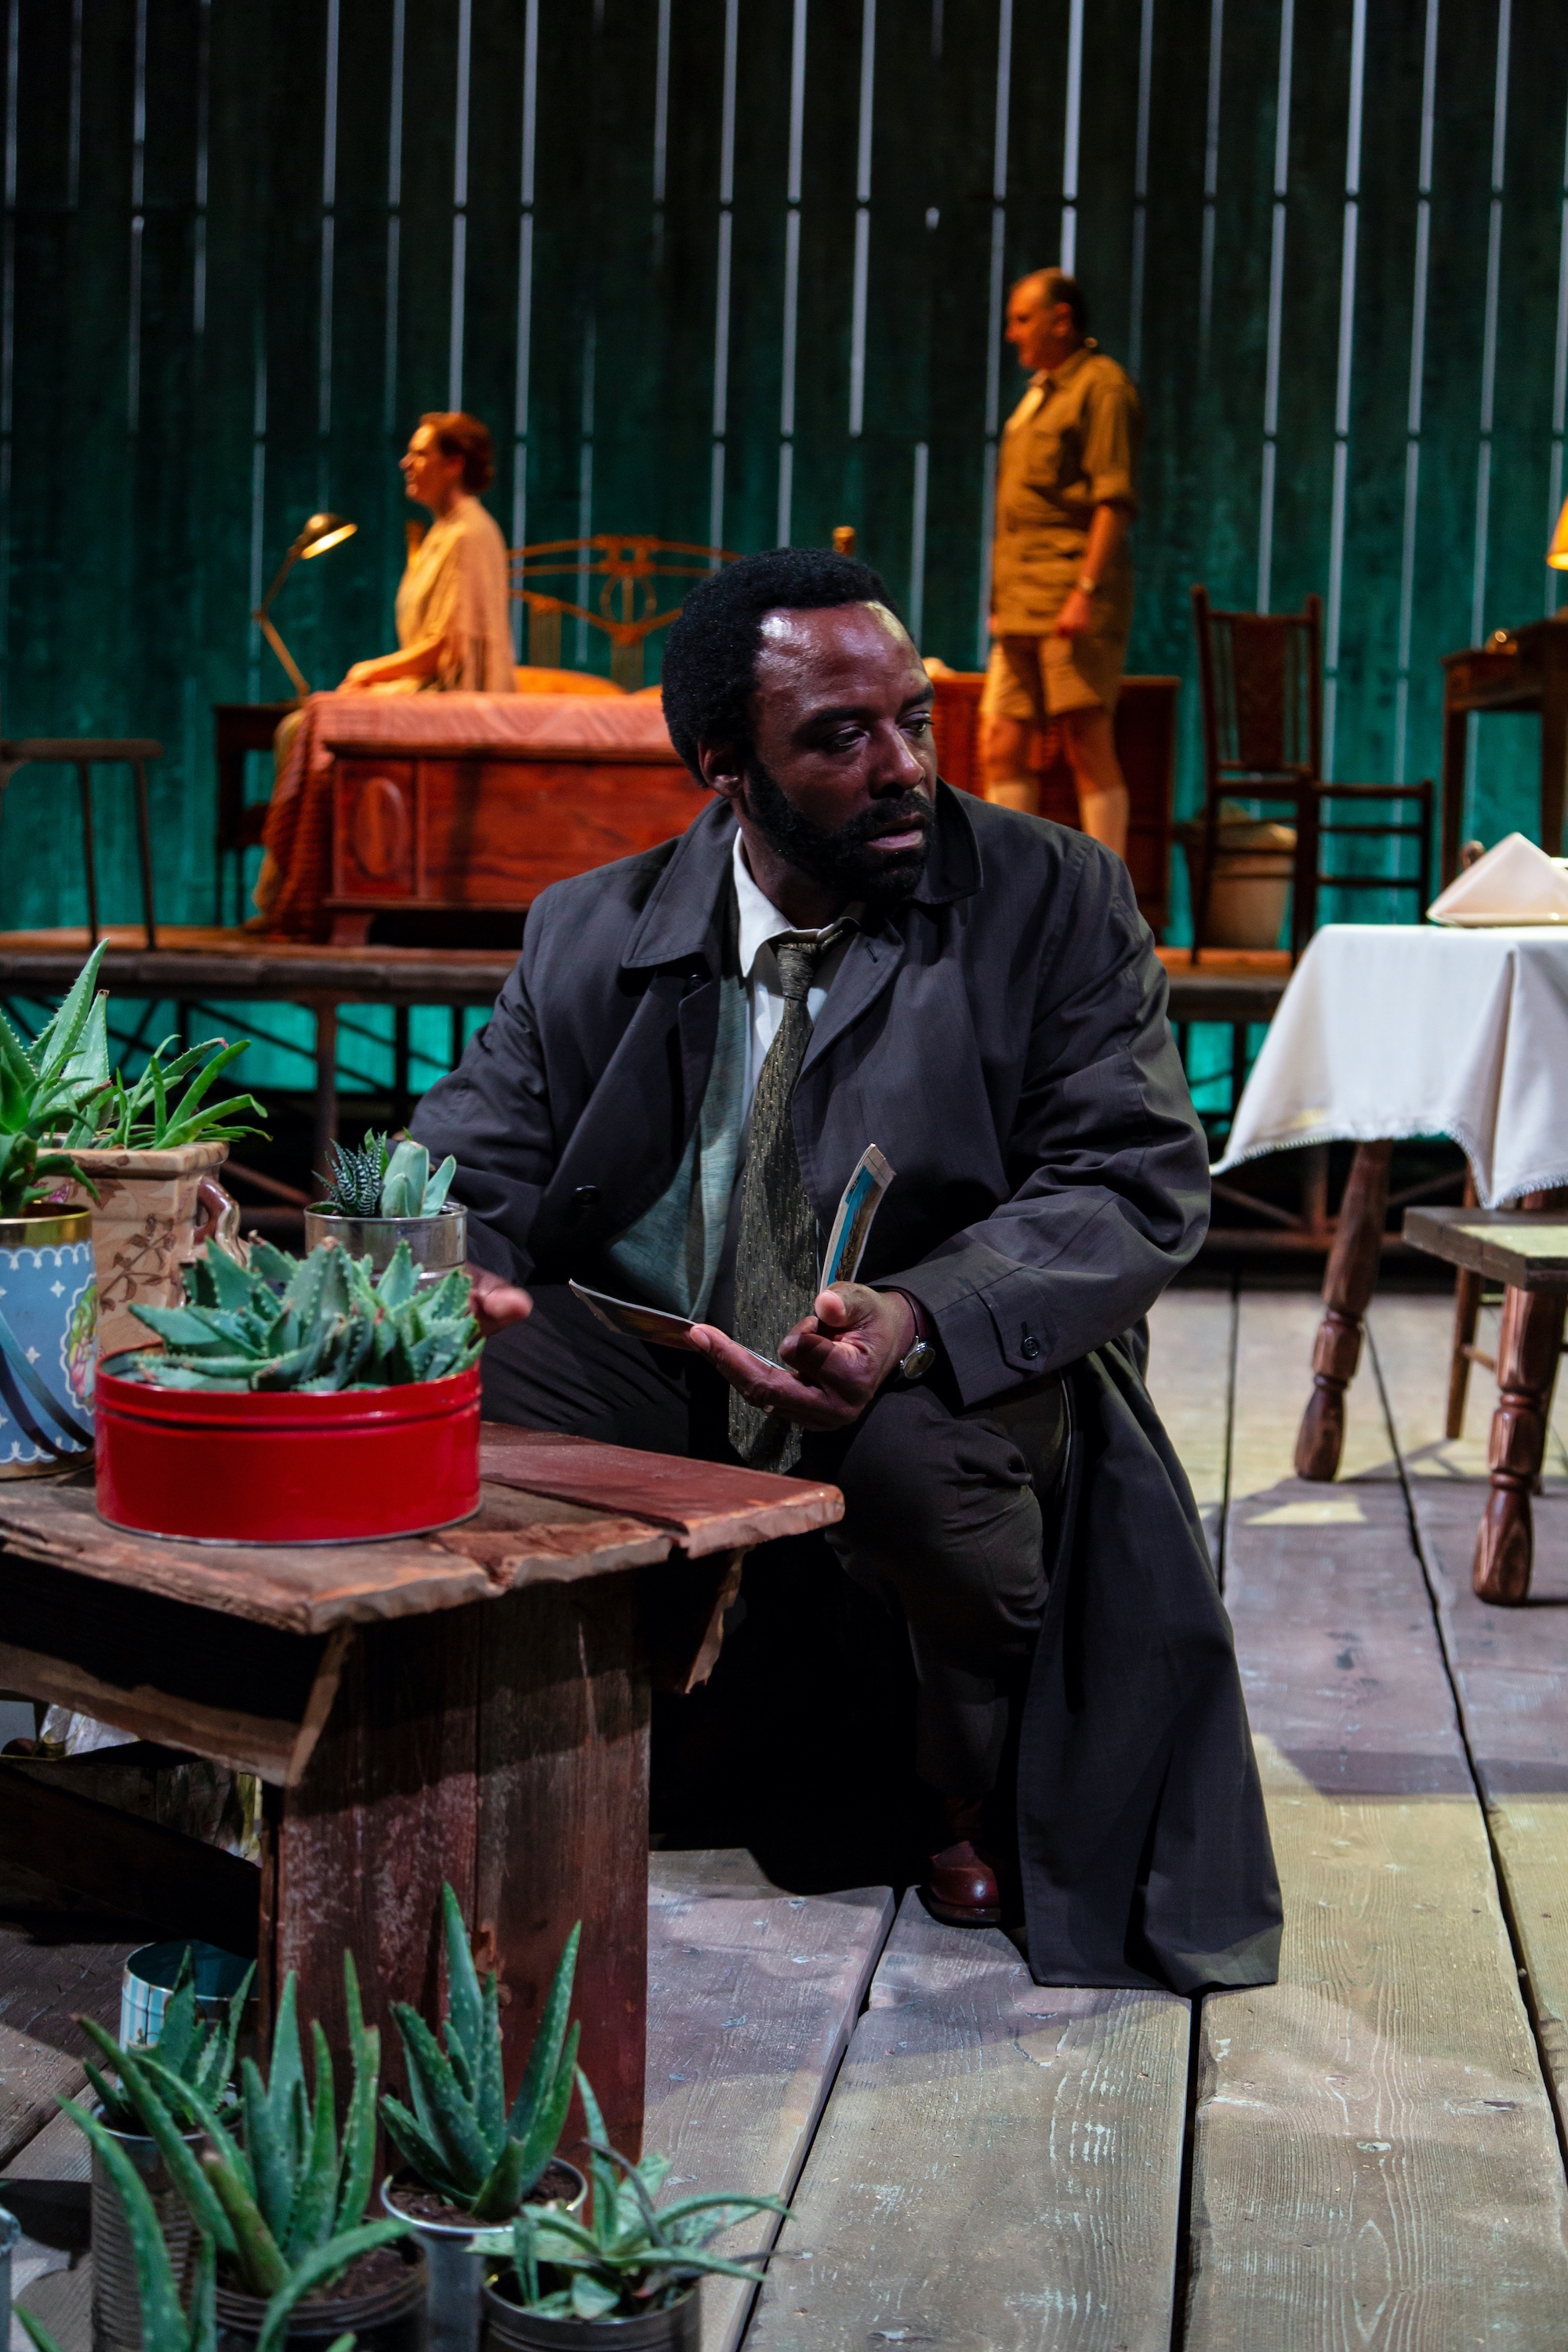 Steve (Ariyon Bakare), foreground; Gladys (Andrus Nichols), Piet (Randall Newsome), background (photo by T. Charles Erickson)